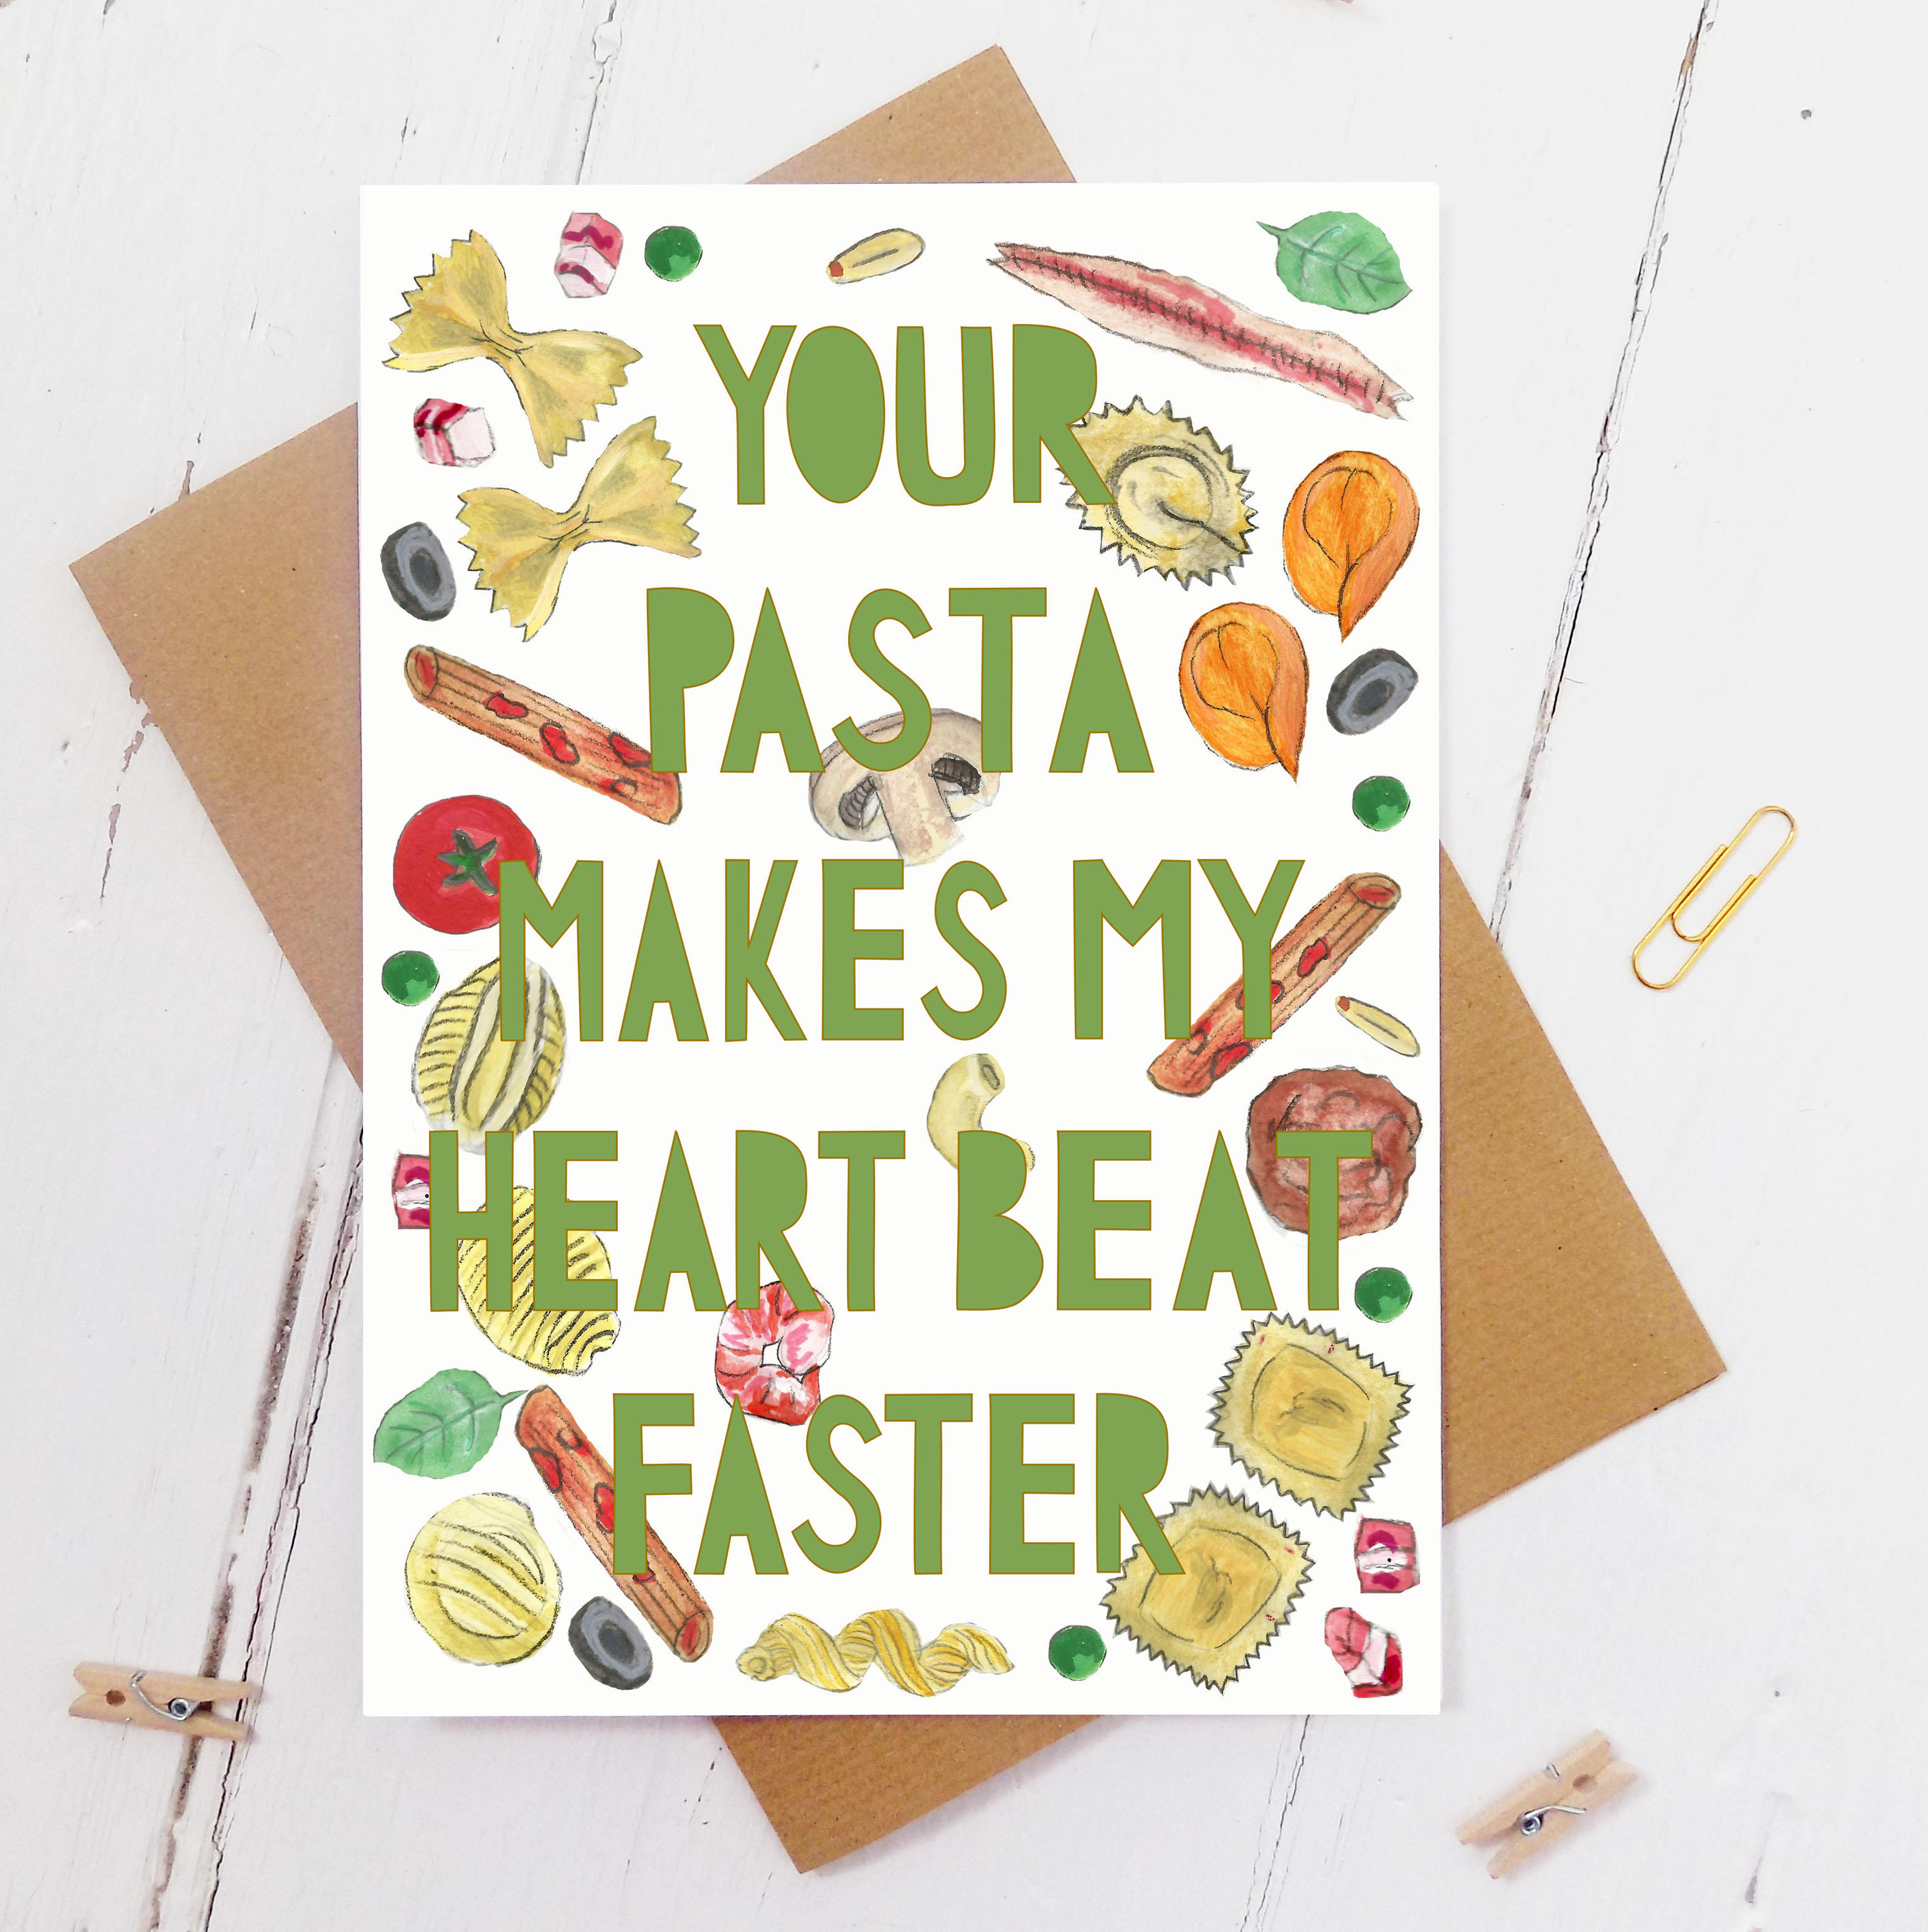 Watercolour illustrations of different pasta with paper cut typography cut out from top to bottom saying 'my heart beats faster for your pasta'